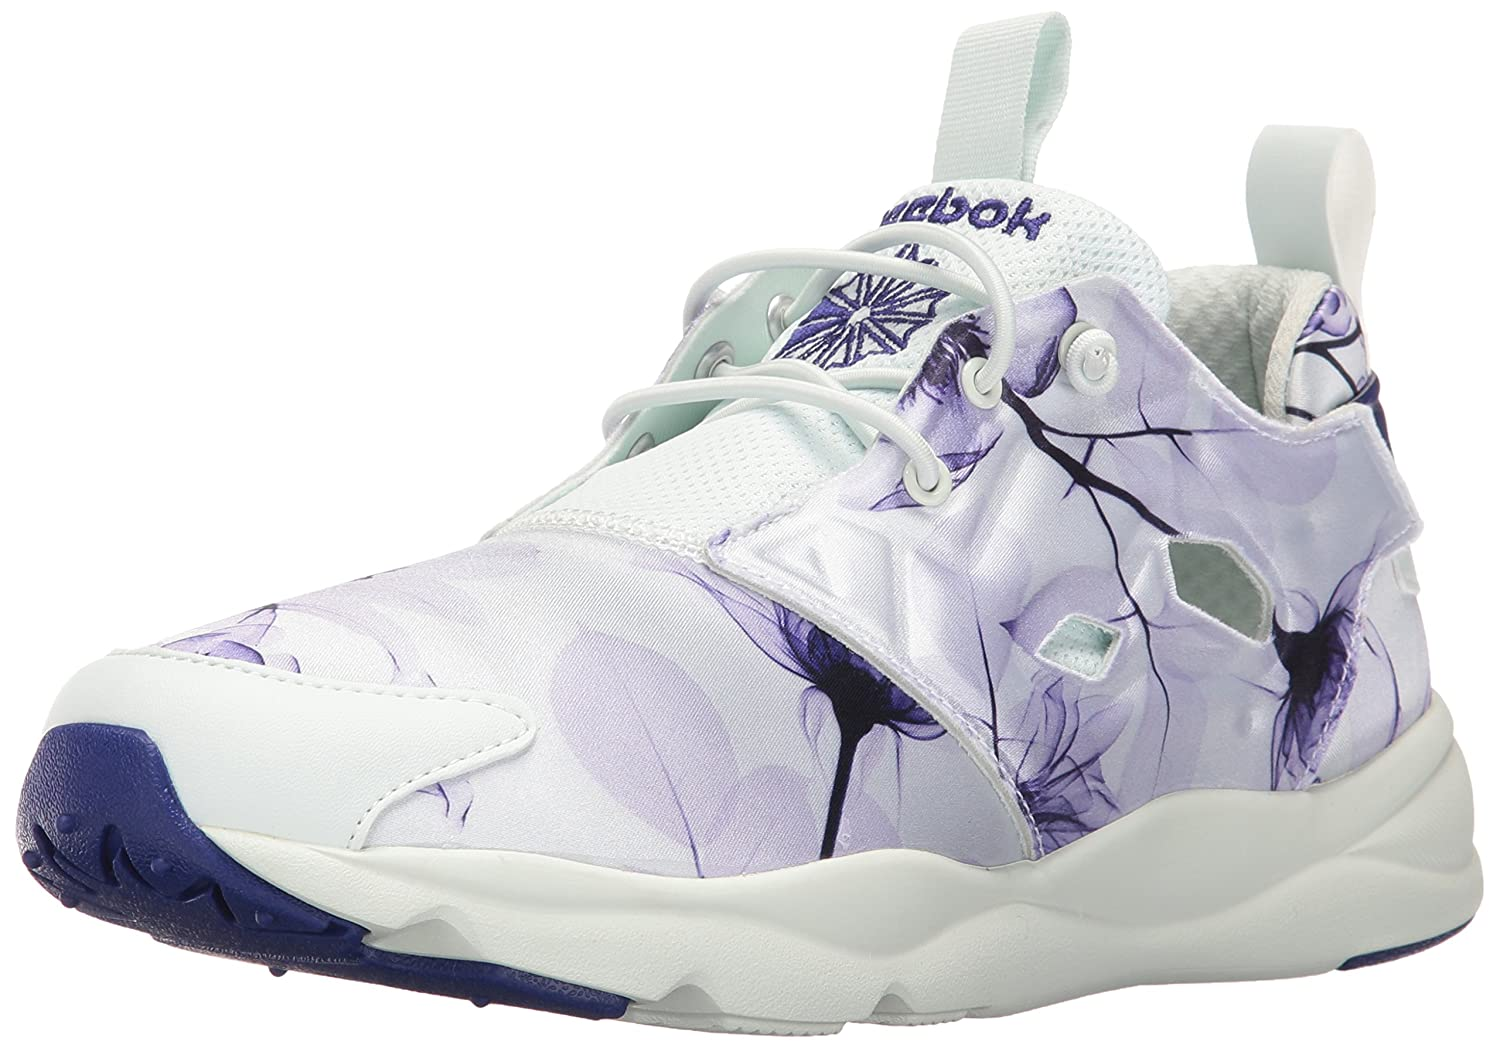 Reebok Women's Furylite Graphic Fashion Sneaker B01AX251SK 7.5 B(M) US|Floral/Opal/Pigment Purple